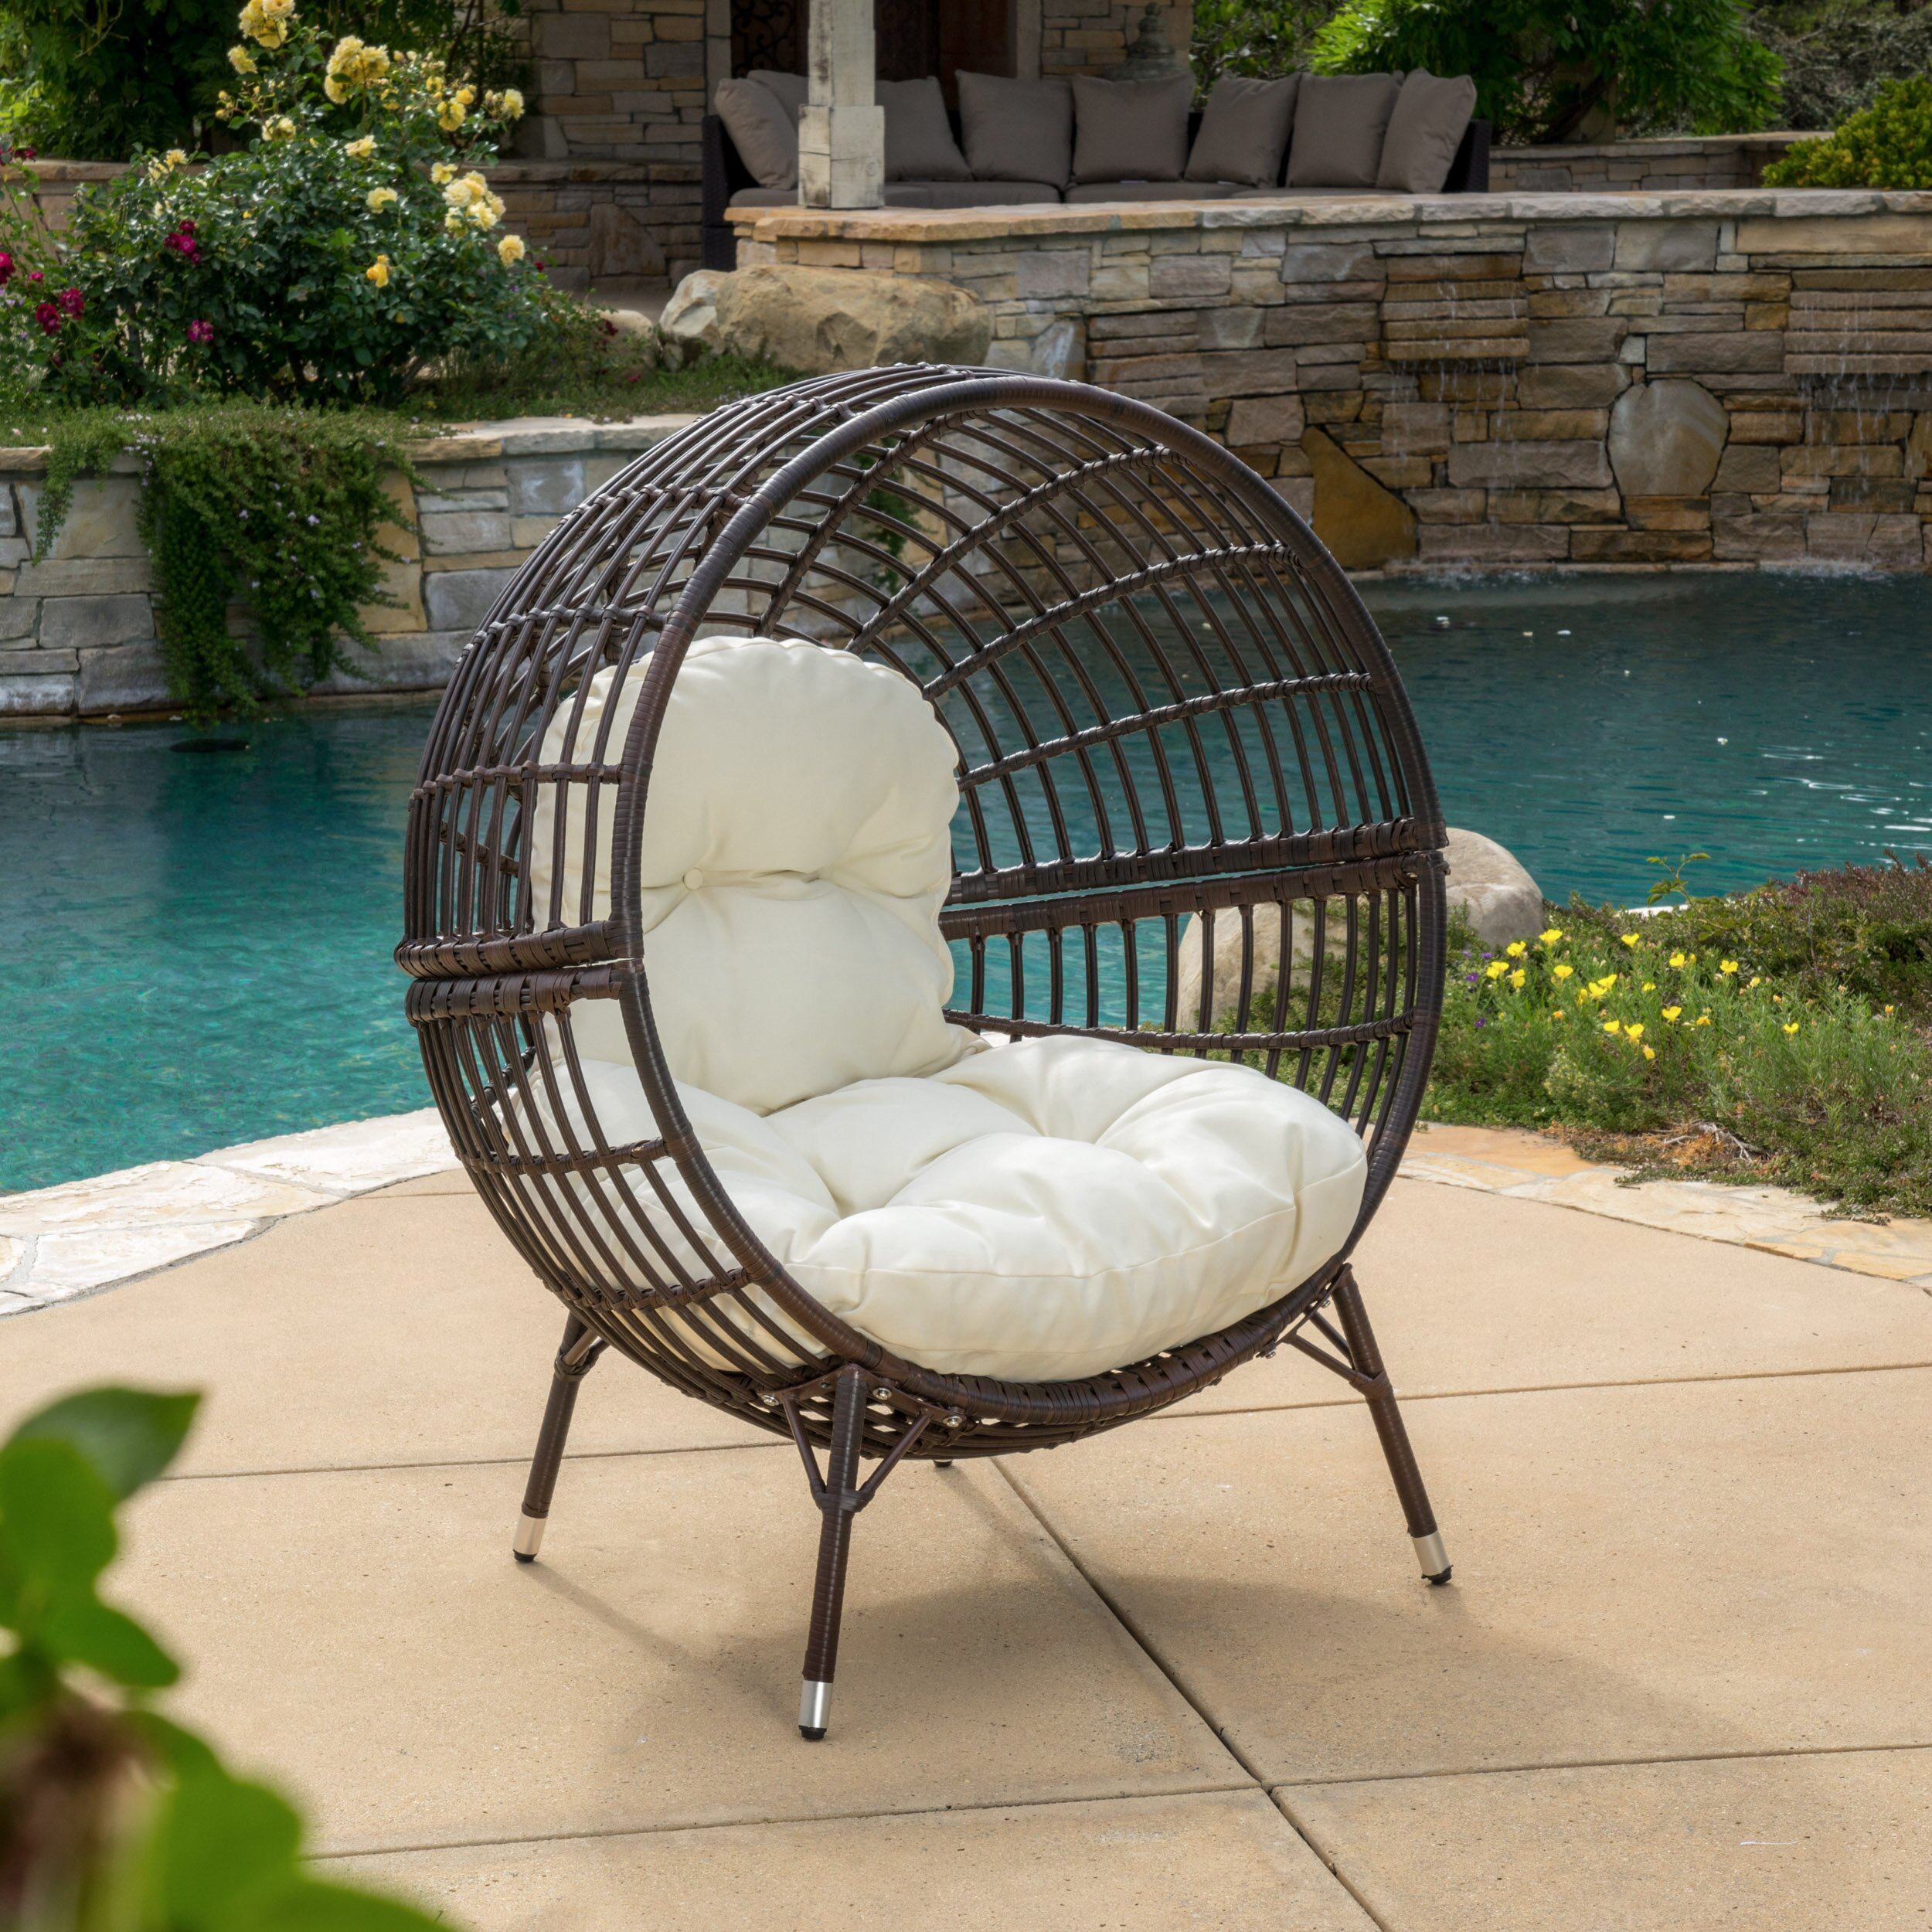 Brayden Studio Mcanally Round Ball Chair With Cushions  Reviews - Tropitone outdoor furniture